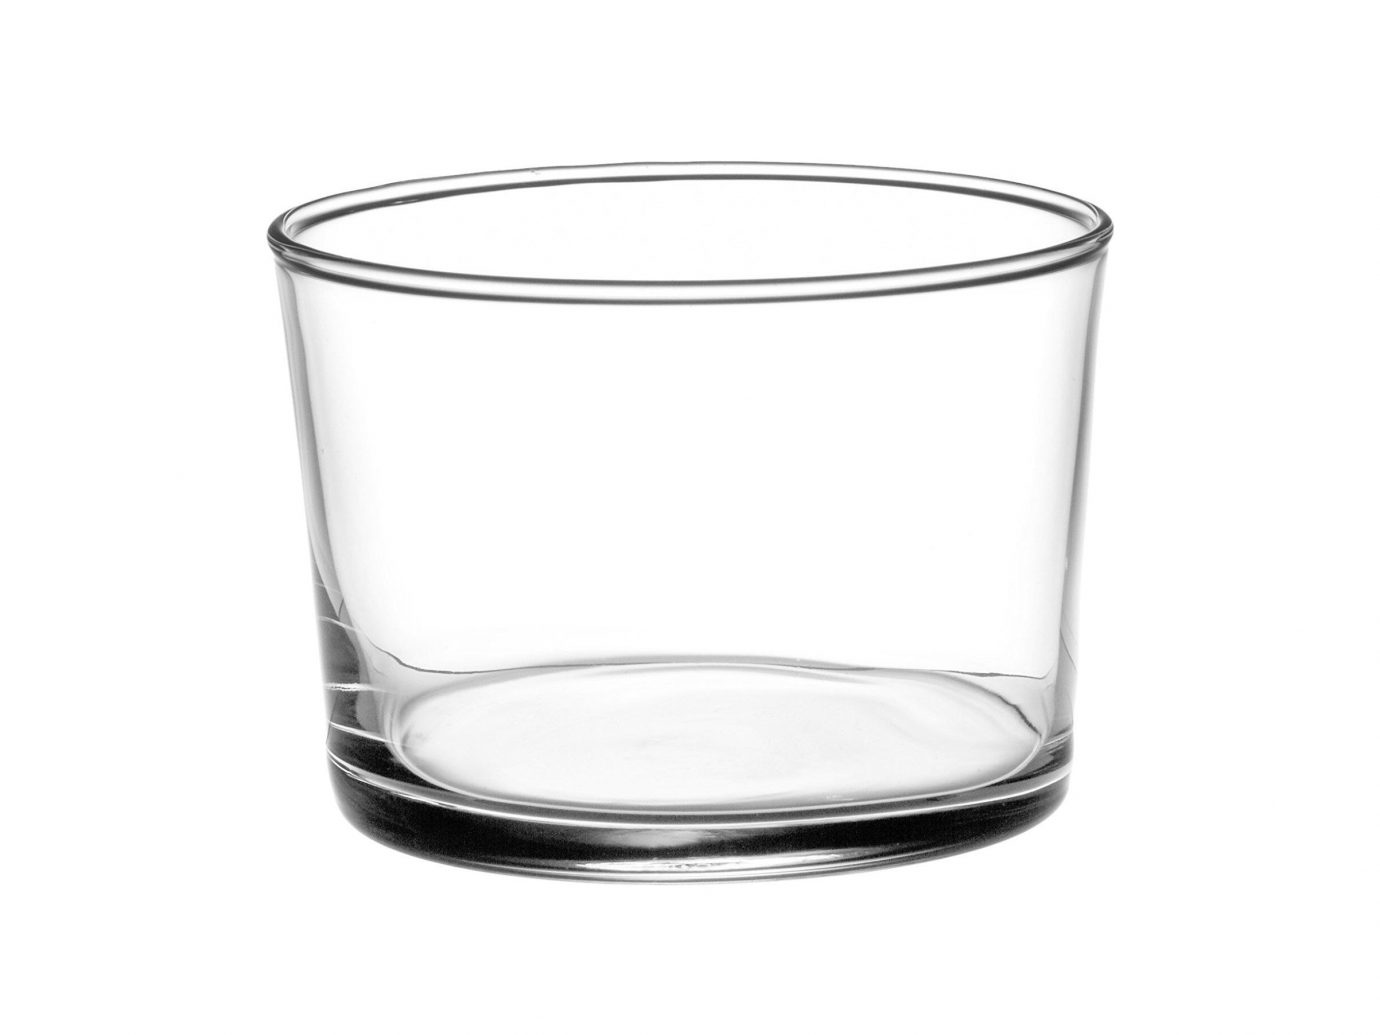 City Copenhagen Kyoto Marrakech Palm Springs Style + Design Travel Shop Tulum cup glass table container highball glass tableware blender drinkware old fashioned glass Drink device product design pitcher product pint glass barware plastic stemware tumbler empty wine glass clear gauge